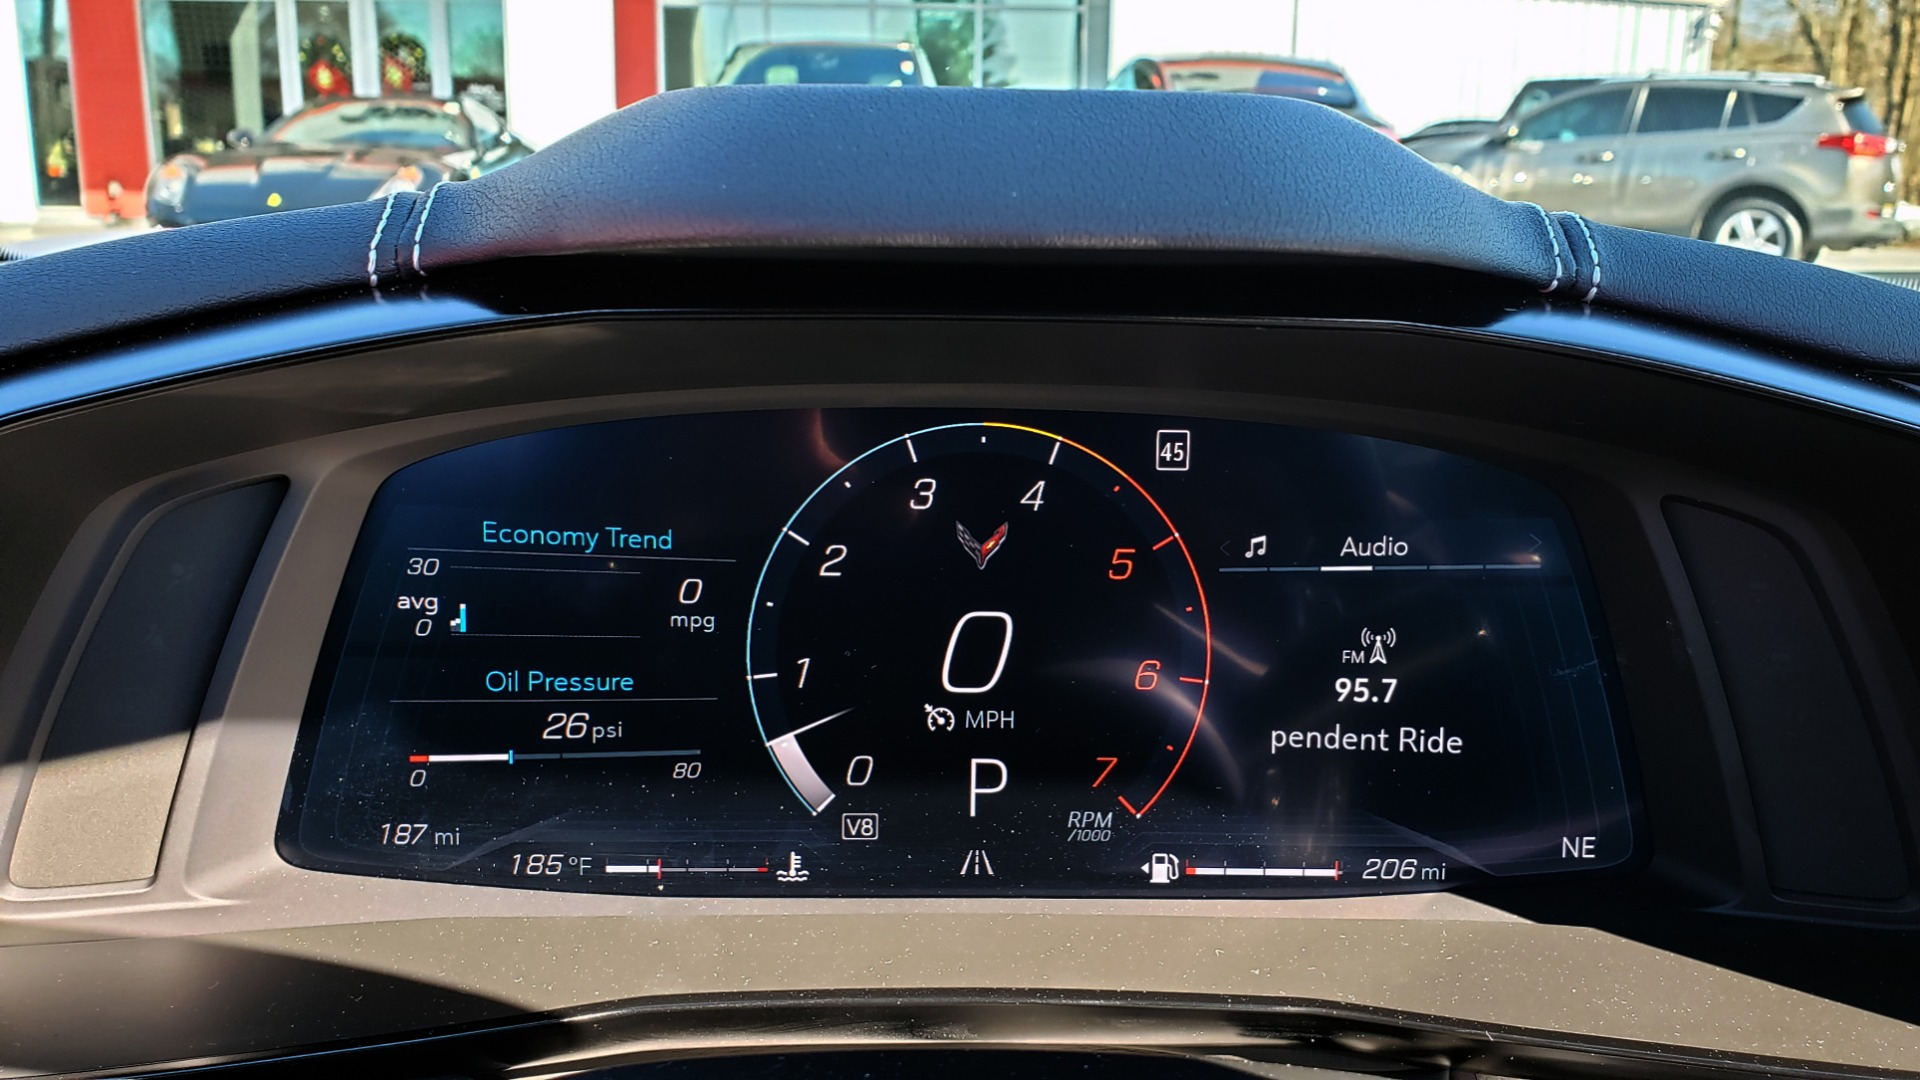 Used 2020 Chevrolet C8 CORVETTE STINGRAY 2LT COUPE / NAV / HUD / BOSE / GT2 SEATS / FRONT LIFT / REARVIEW for sale Sold at Formula Imports in Charlotte NC 28227 67